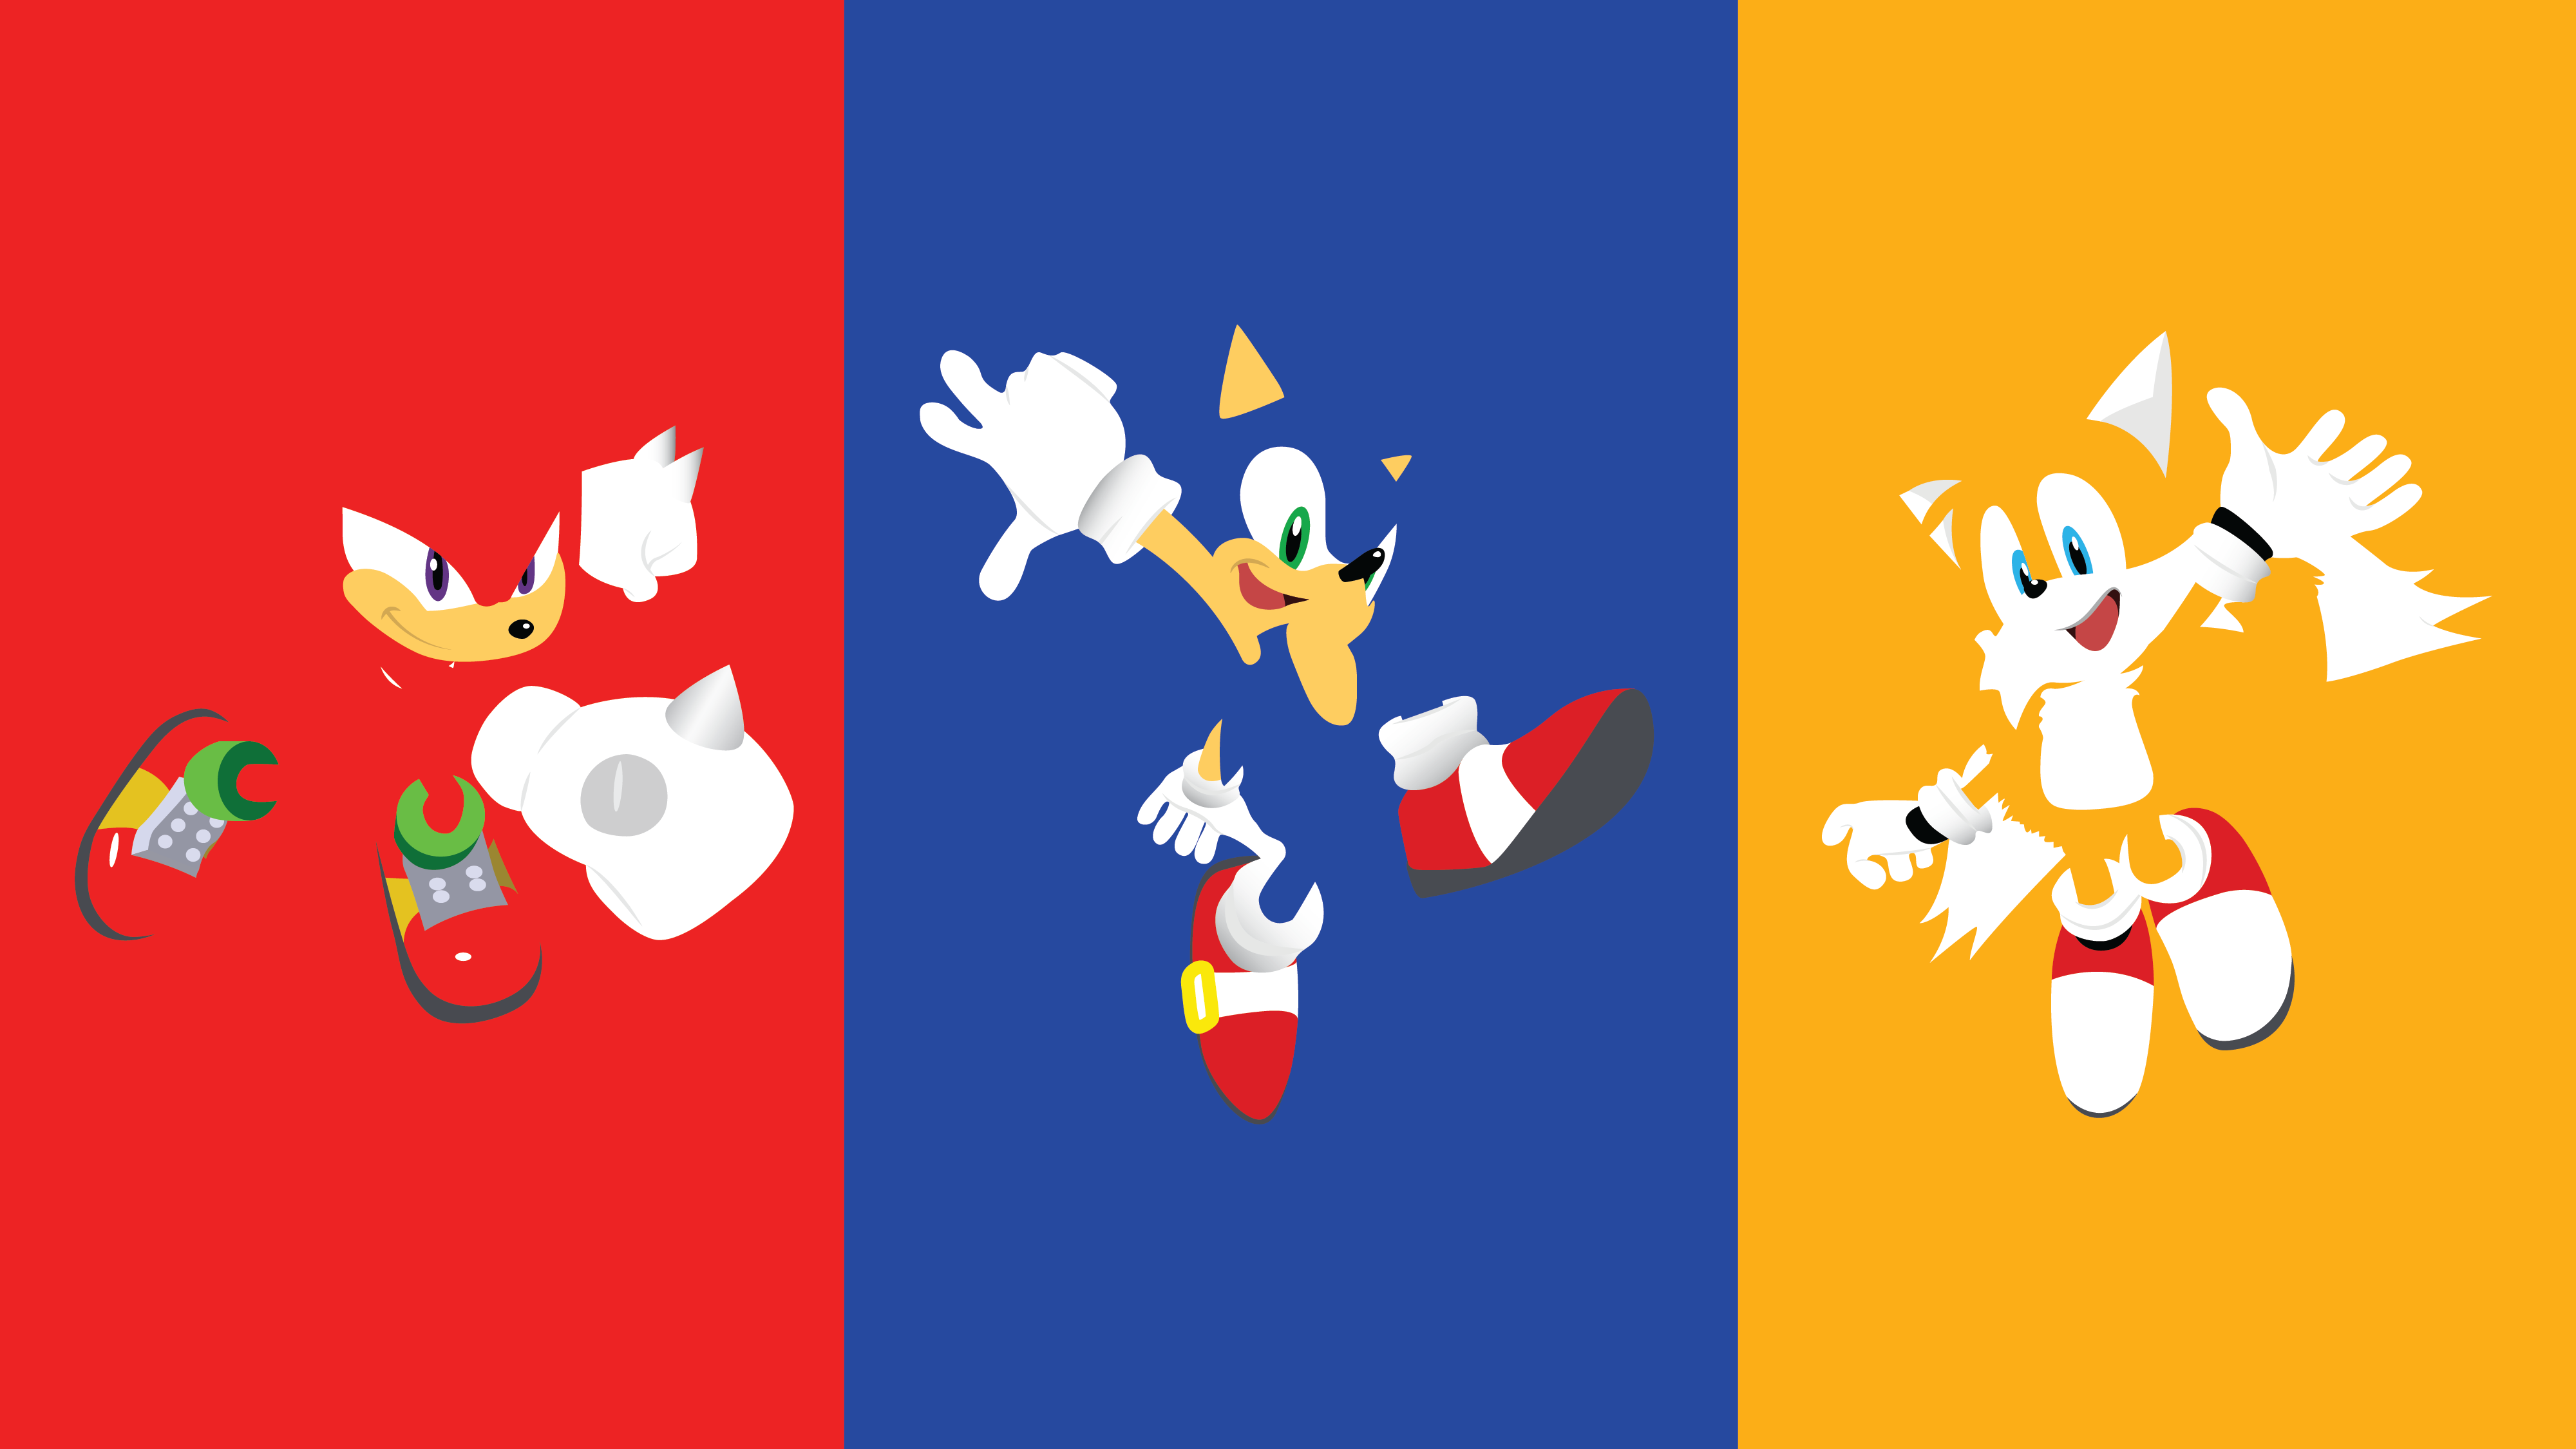 minimalistic-sonic-wallpaper-by | Sonic The Hedgehog ...